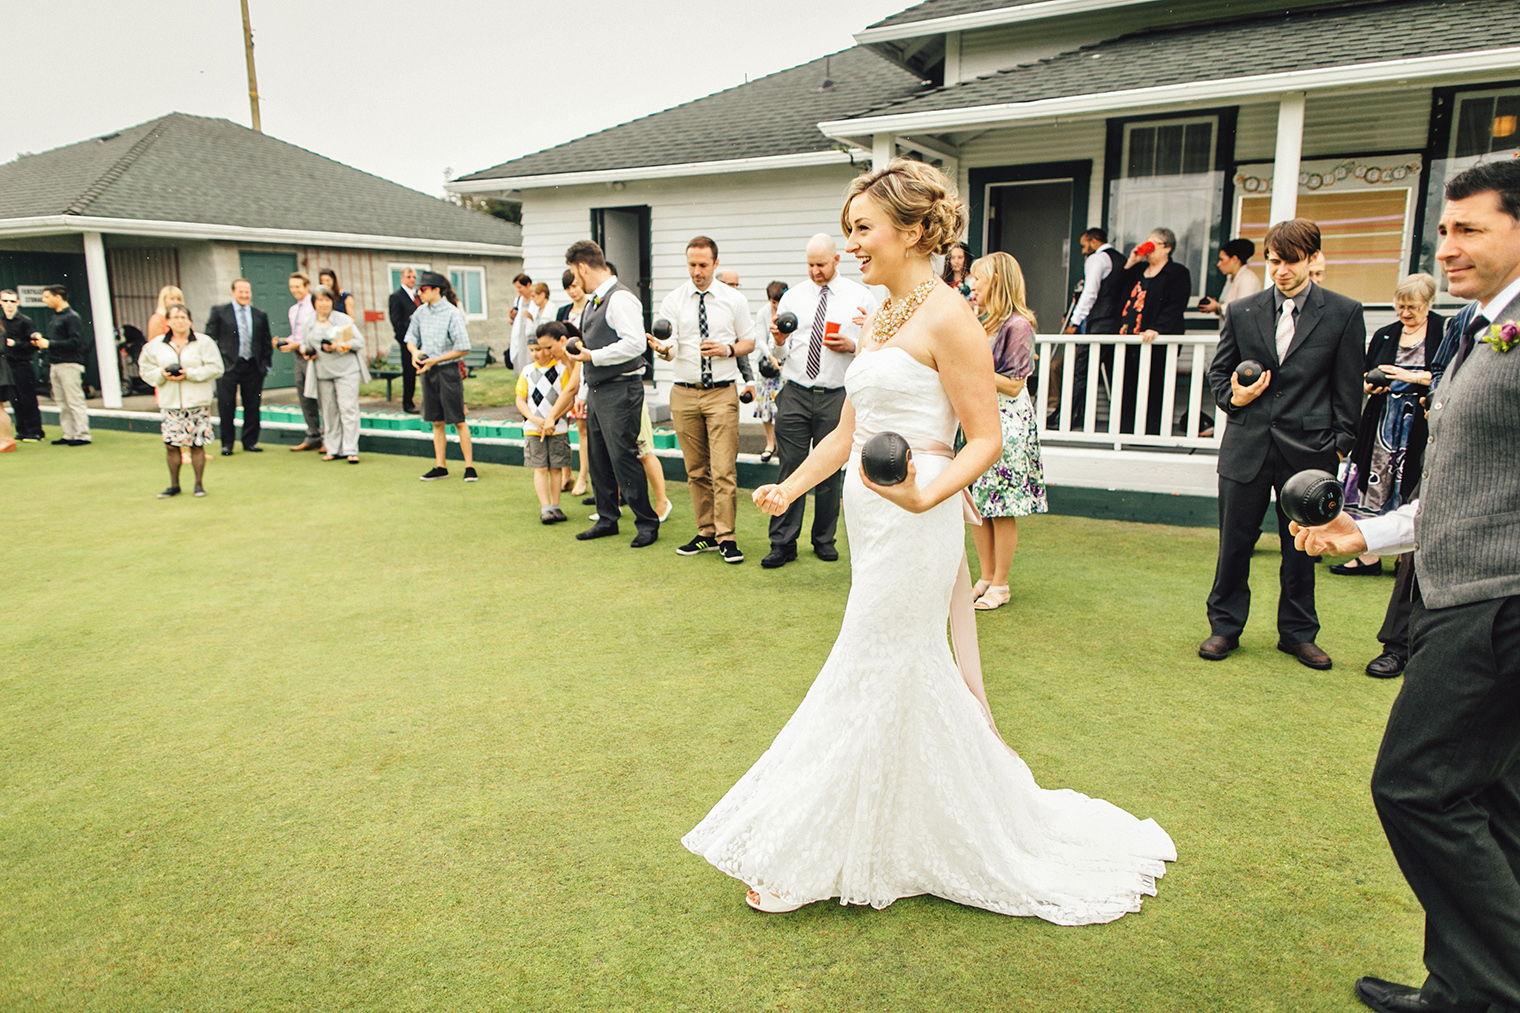 shannon getting married at the burnside lawn bowling club